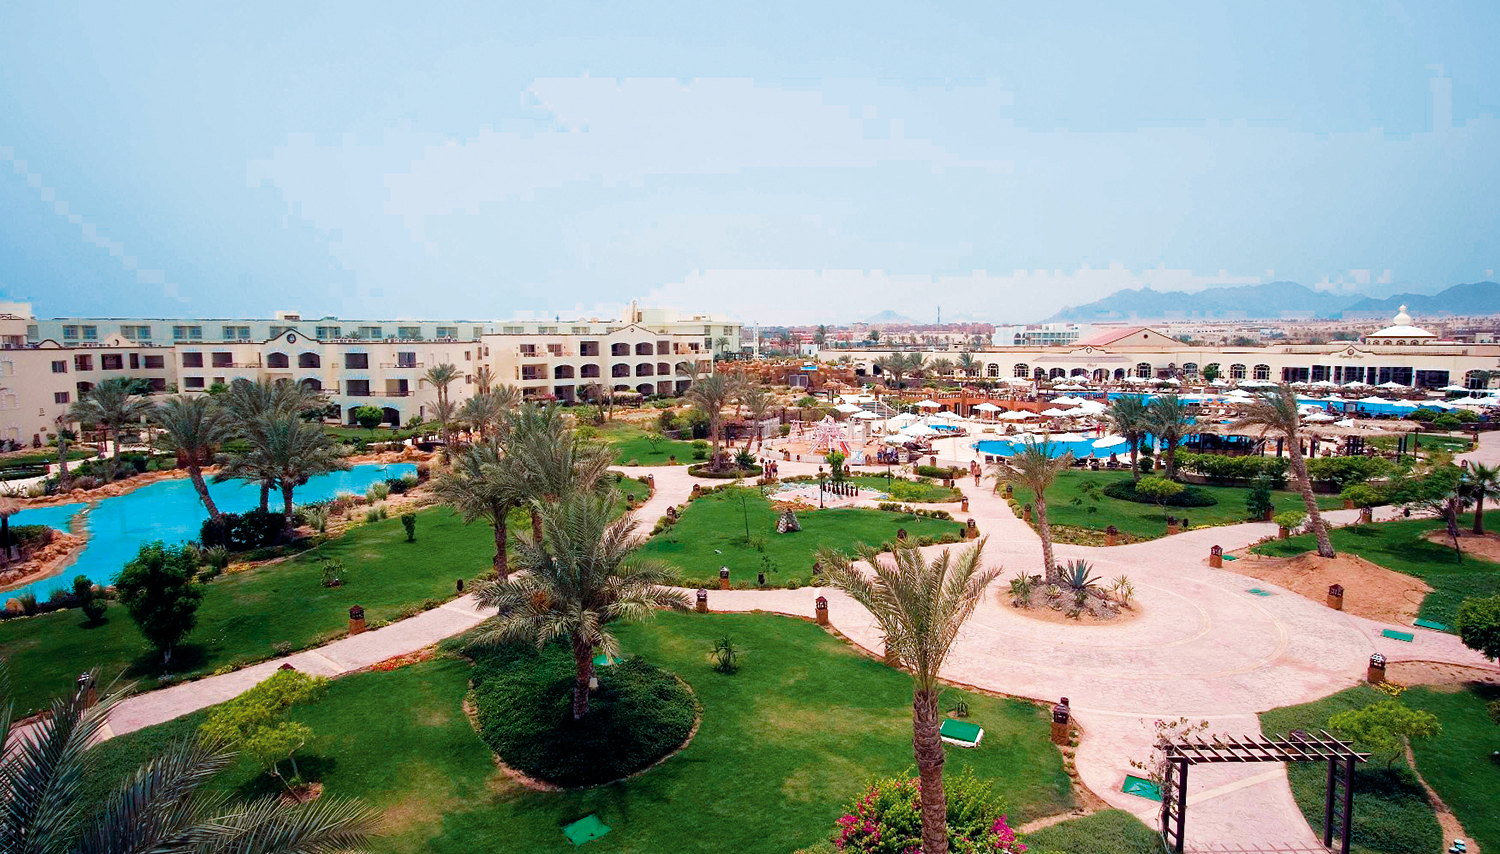 Regency Plaza Aquapark & Spa Resort hotell (Sharm el Sheikh, Egiptus)